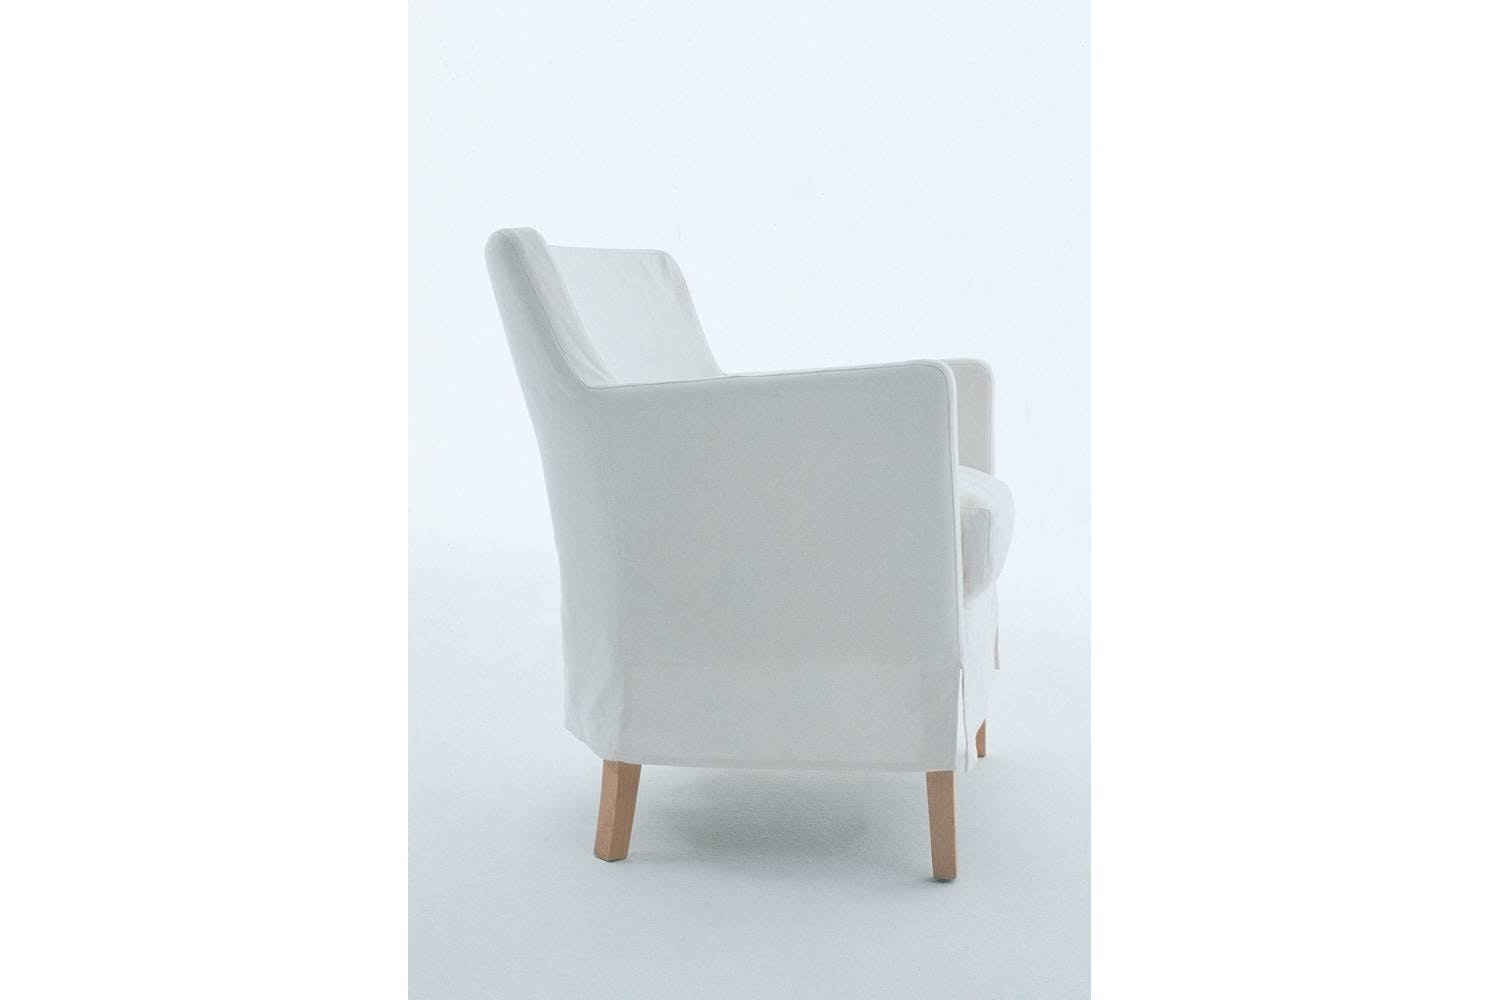 Ariel Armchair by Piero Lissoni for Living Divani